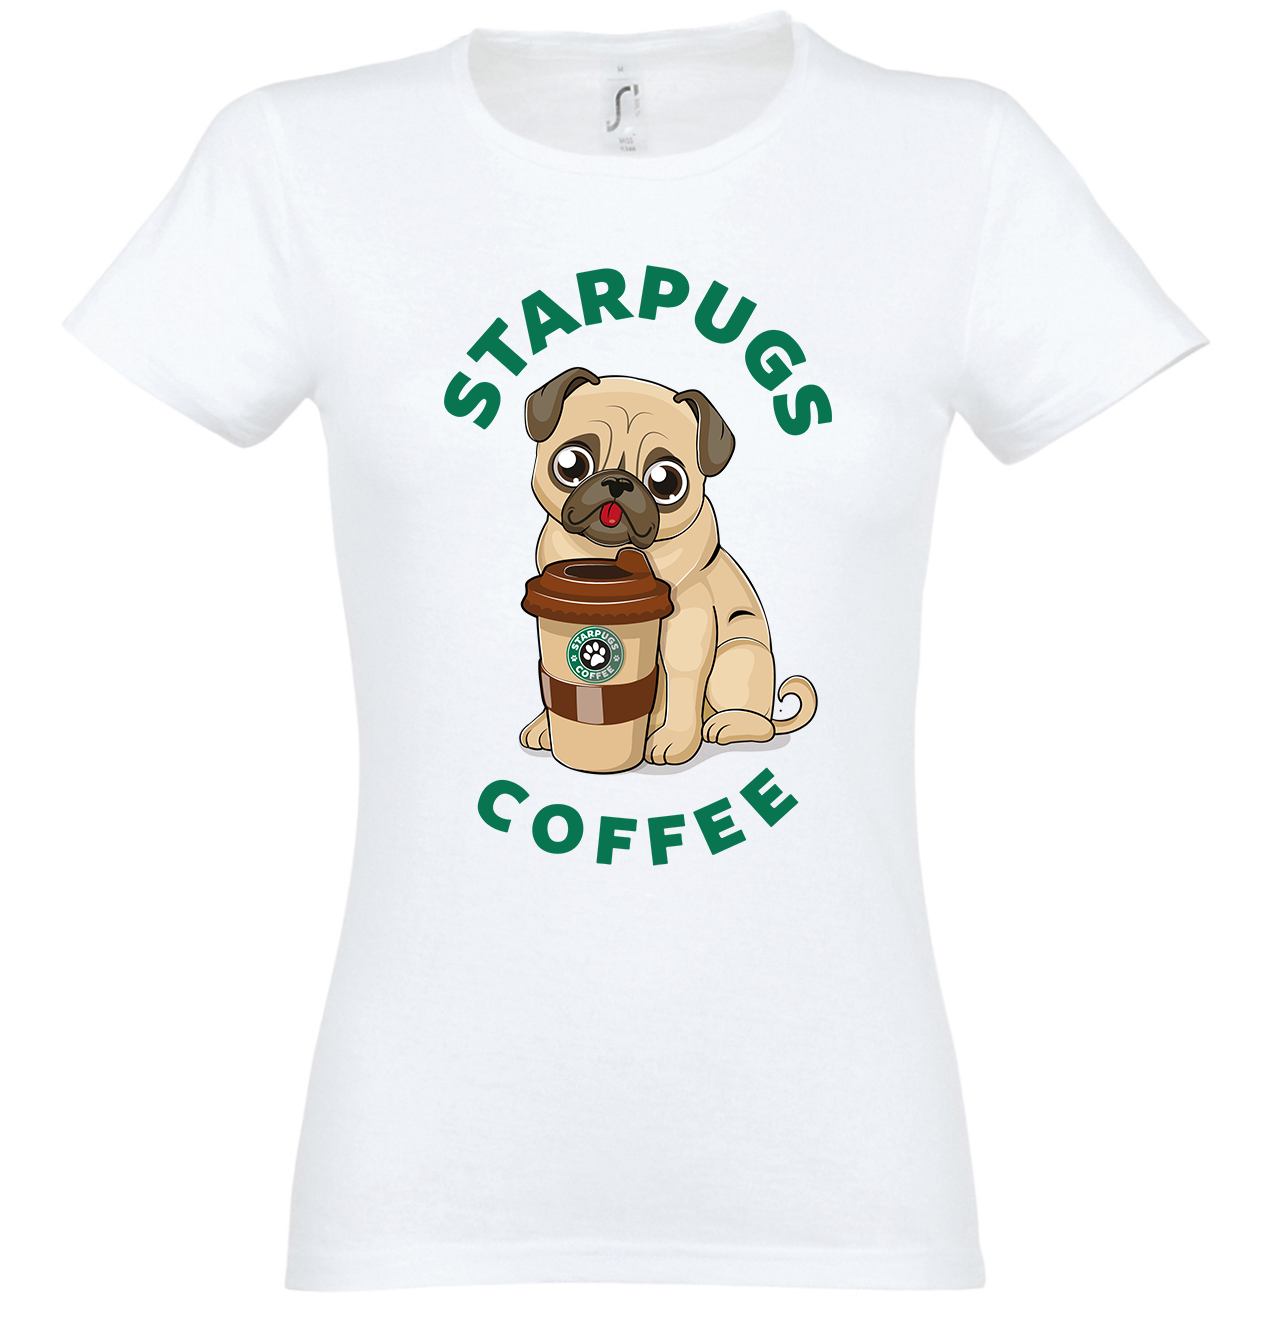 Starpugs coffee